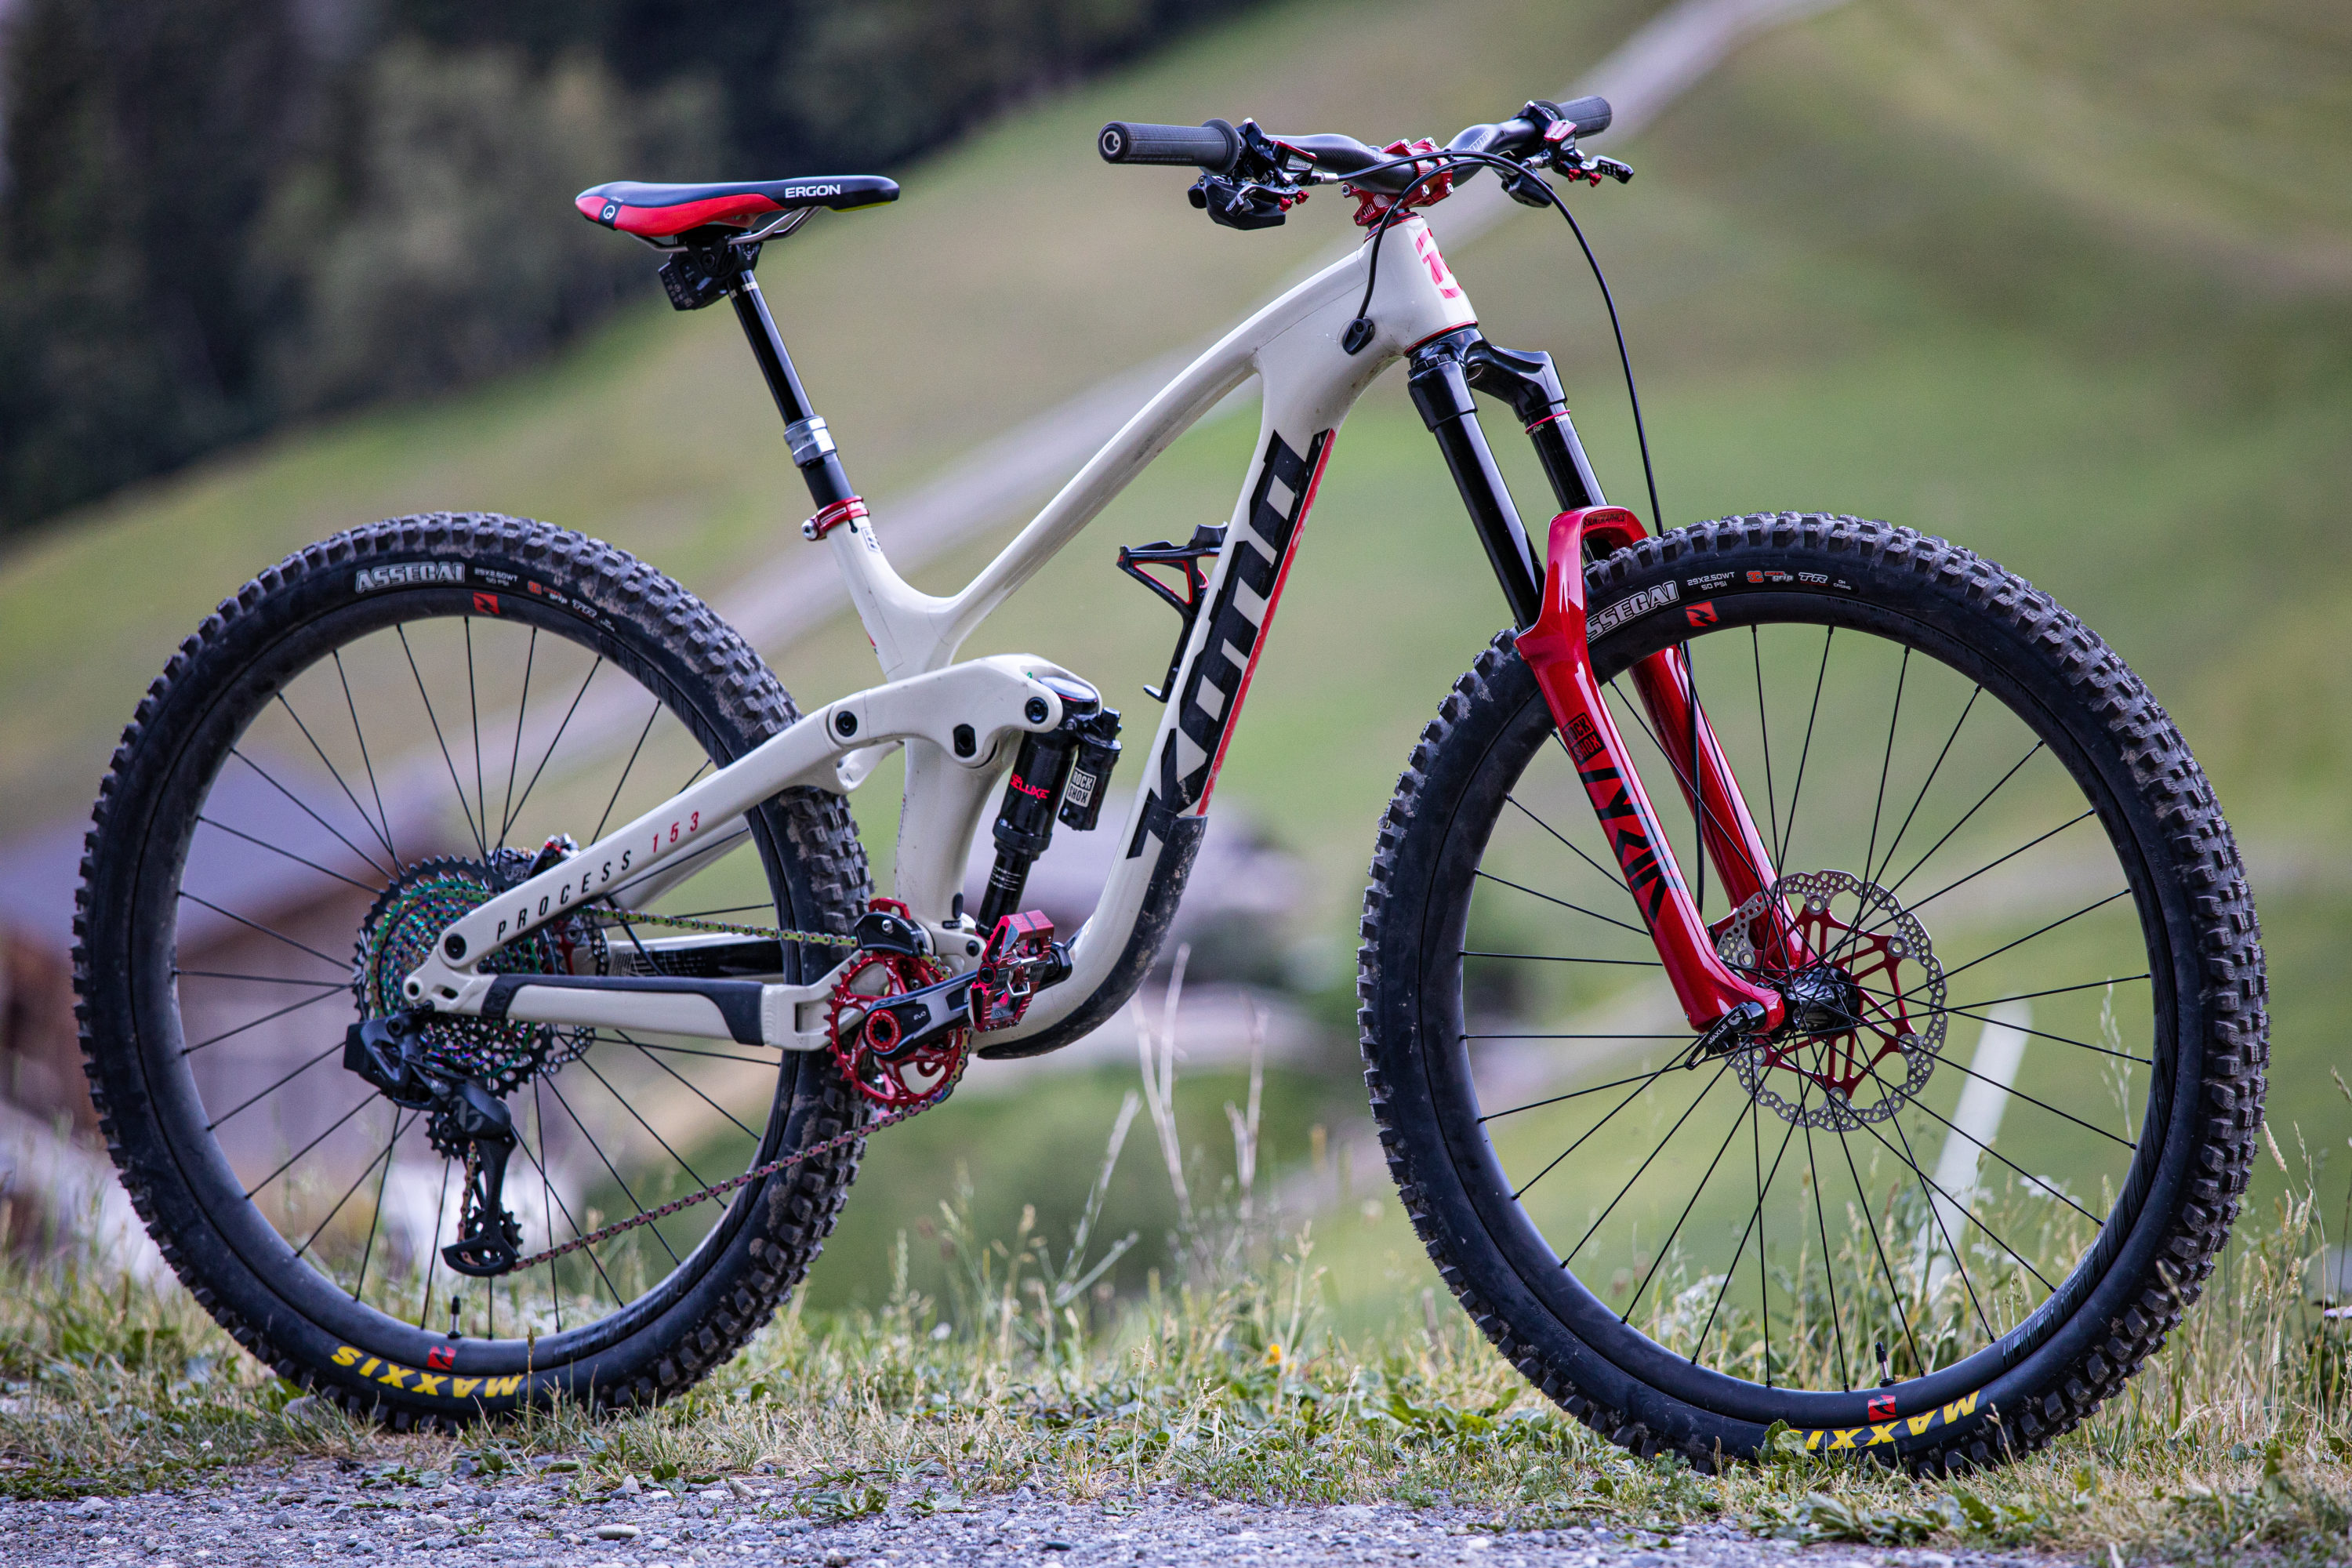 Kona Dream Builds:  Garry's Show Stopping Process